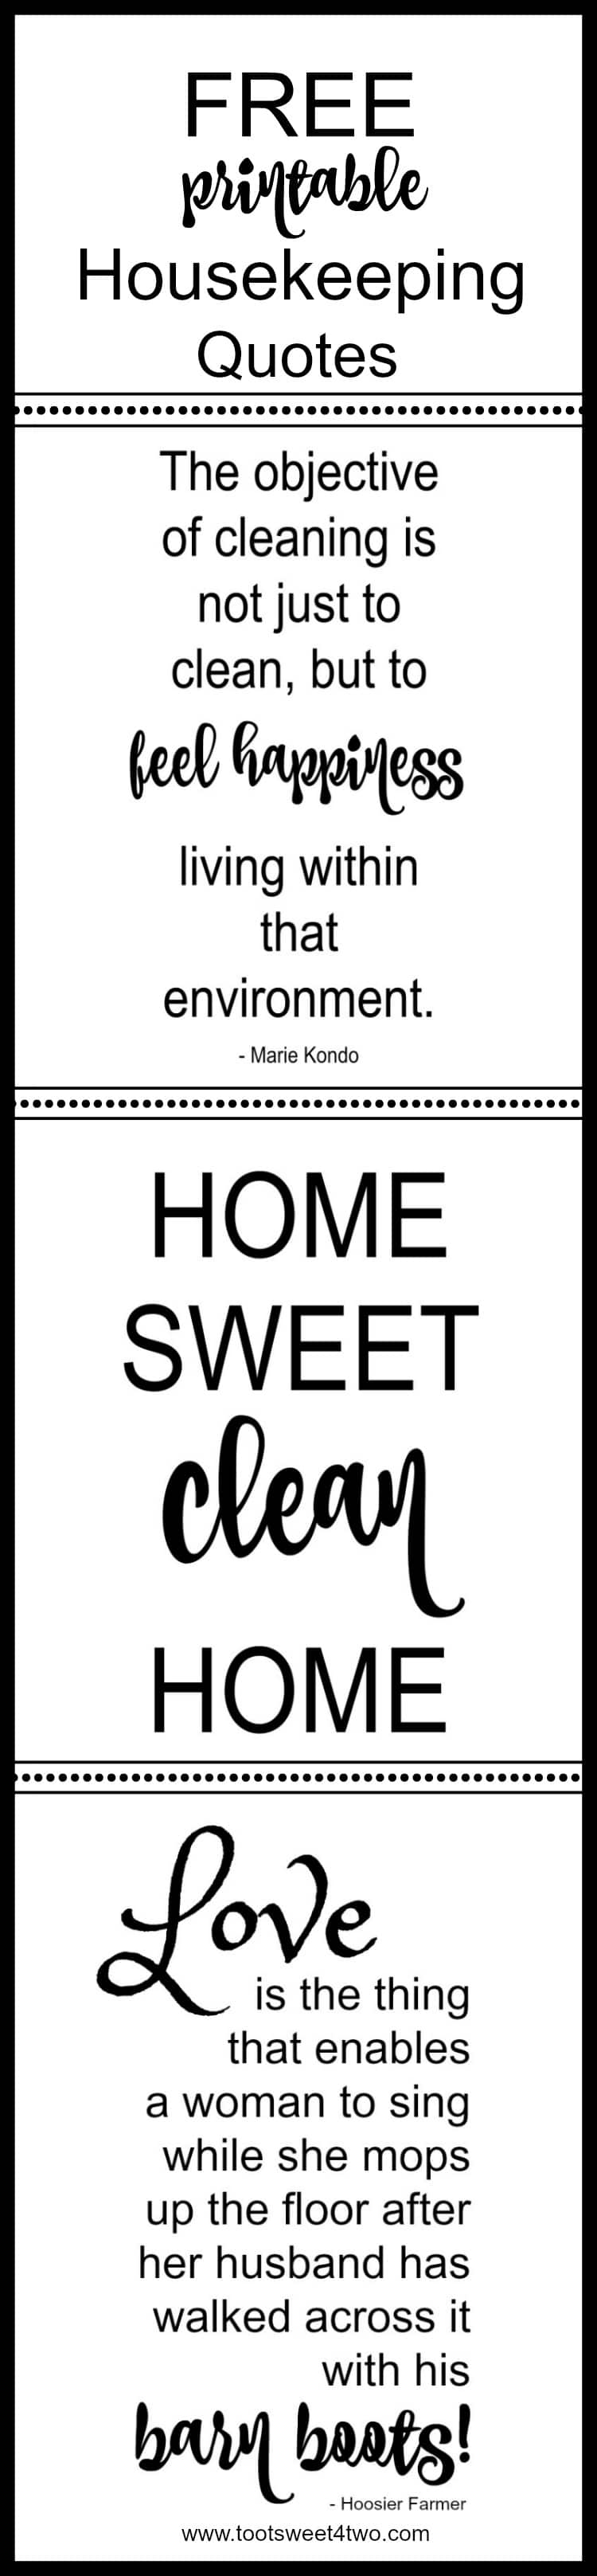 In our busy, hectic lives, keeping a clean home is a constant challenge. Sometimes it seems easier to just pile dirty dishes in the sink rather than loading the dishwasher. Or, letting your laundry pile up in a gigantic heap seems easier than running a load while you cook dinner. As for dusting and vacuuming, why not let that chore go another week? After all, who will notice? Learn why a clean home influences a healthy mind and body! | www.tootsweet4two.com